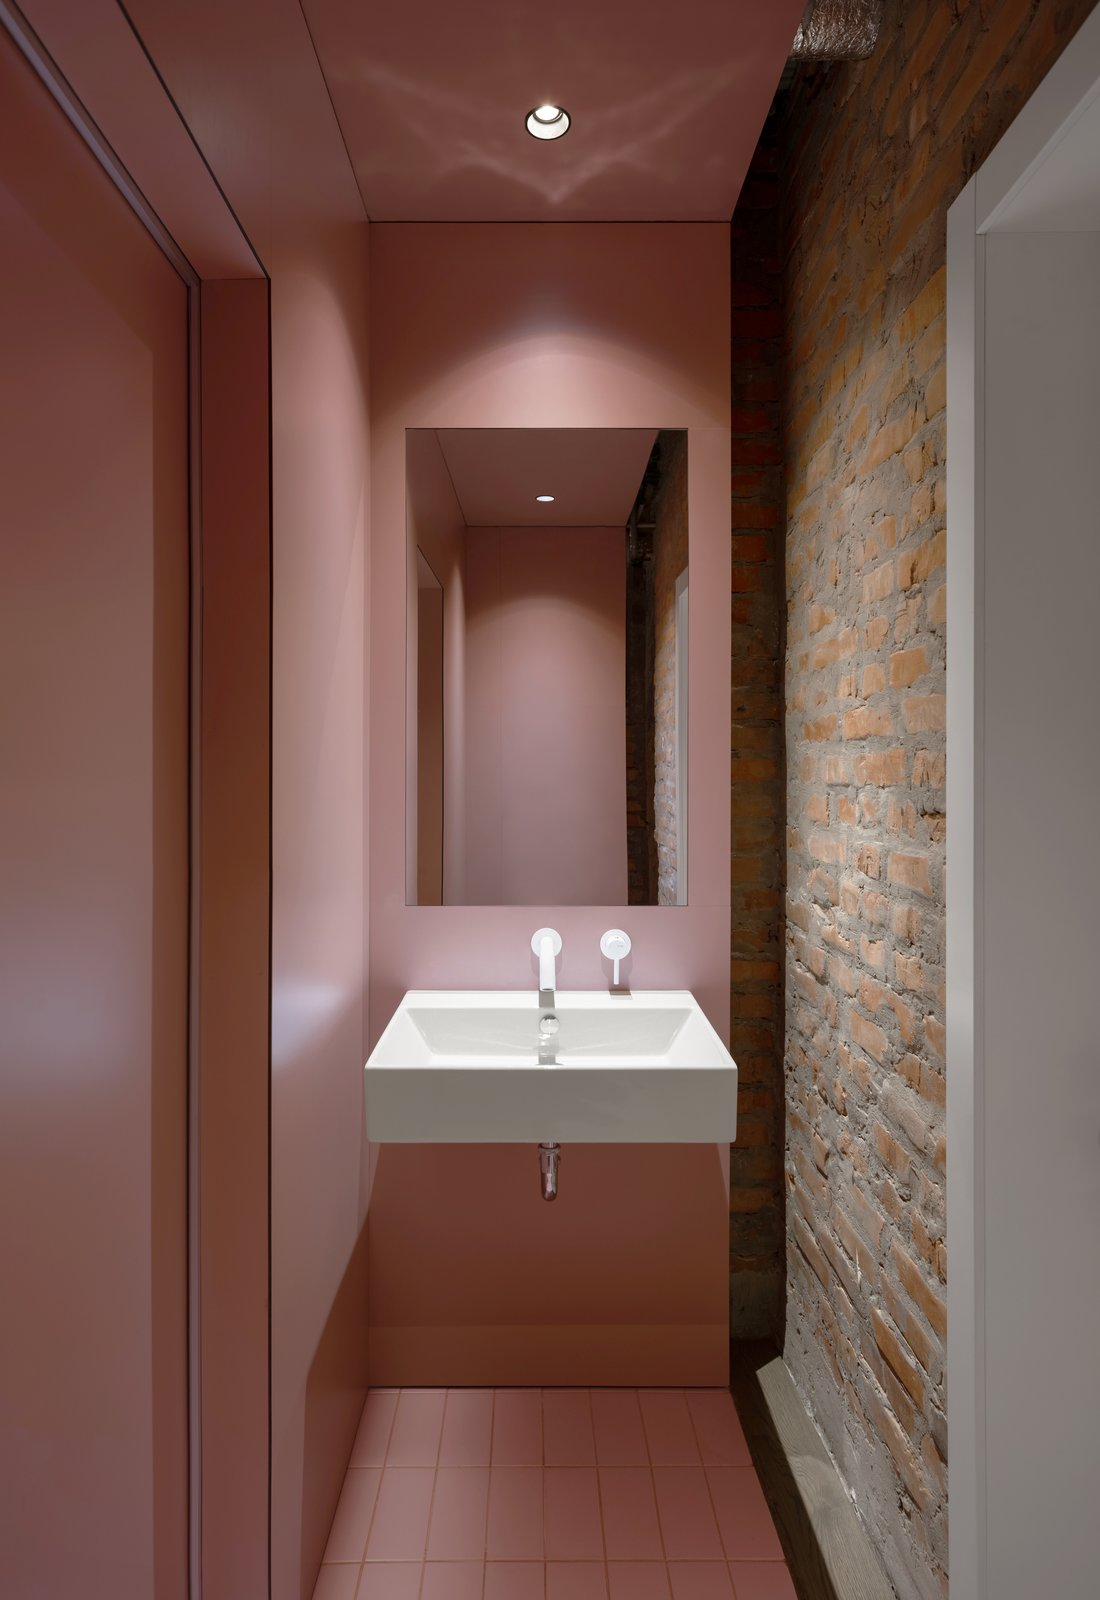 Bursa Hotel sink with millennial pink walls